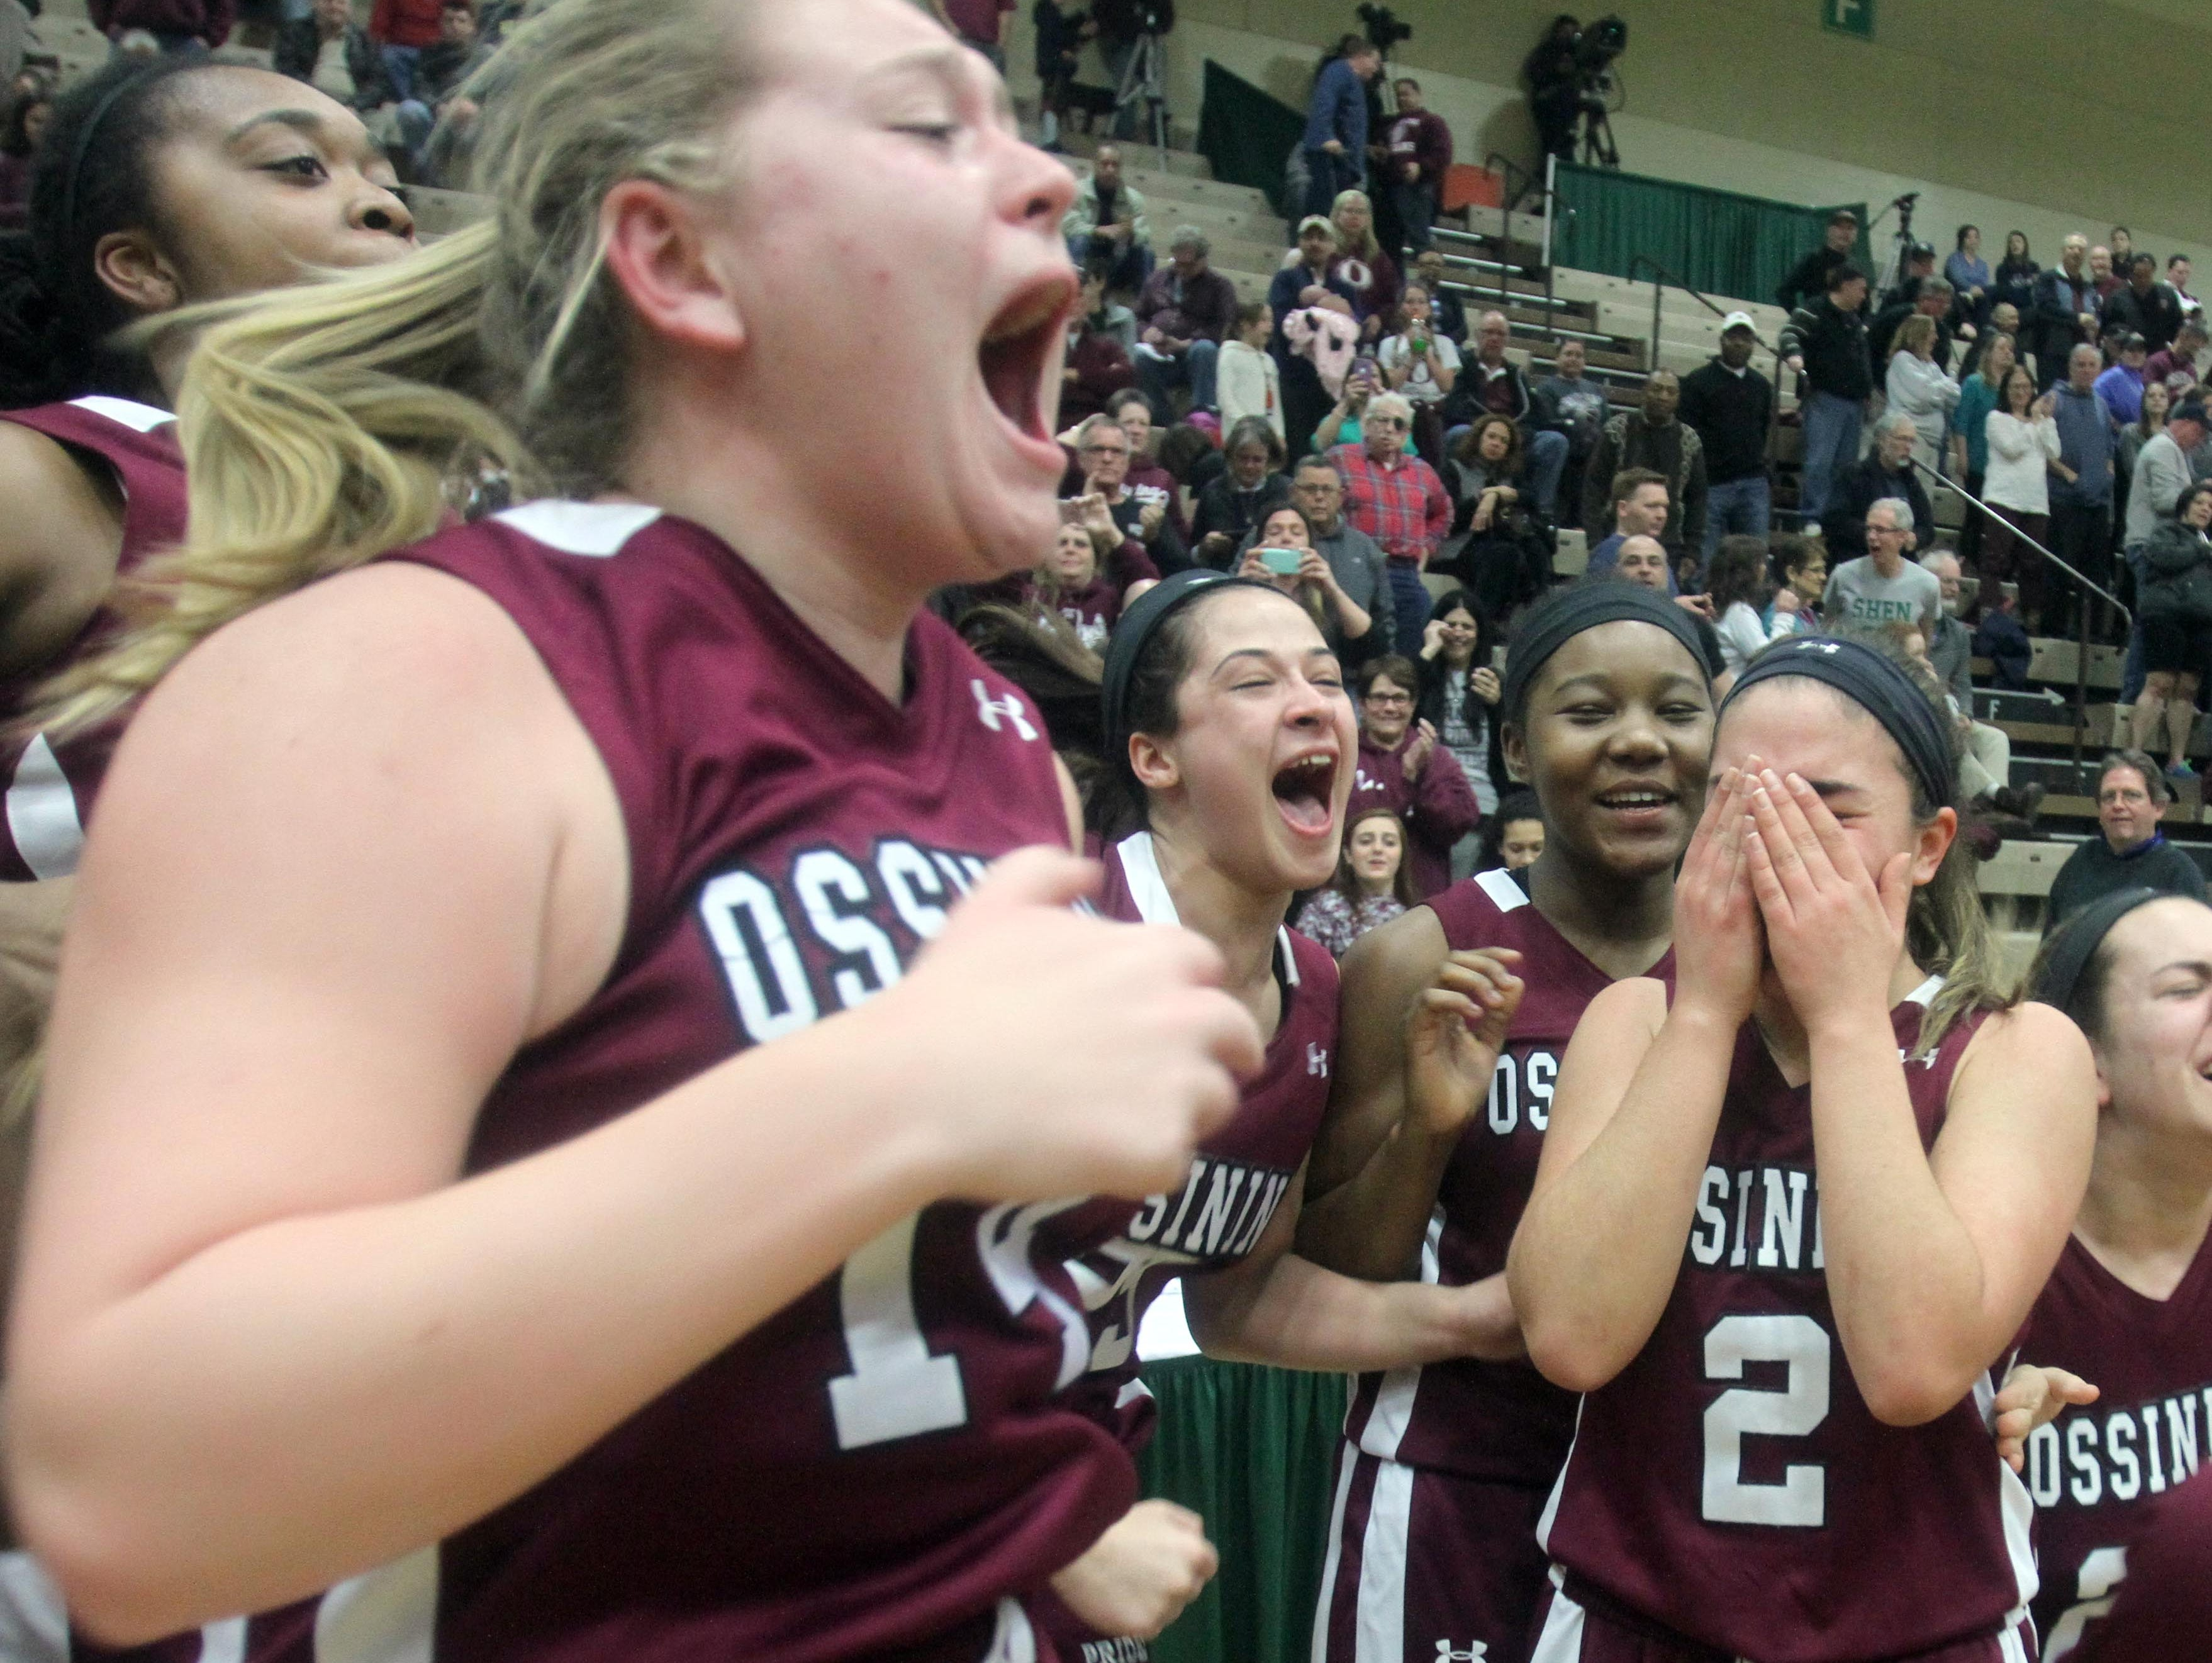 Ossining celebrates after defeating Shenendehowa 69-66 to win the New York State Class AA championship at Hudson Valley Community College in Troy March 12, 2016.